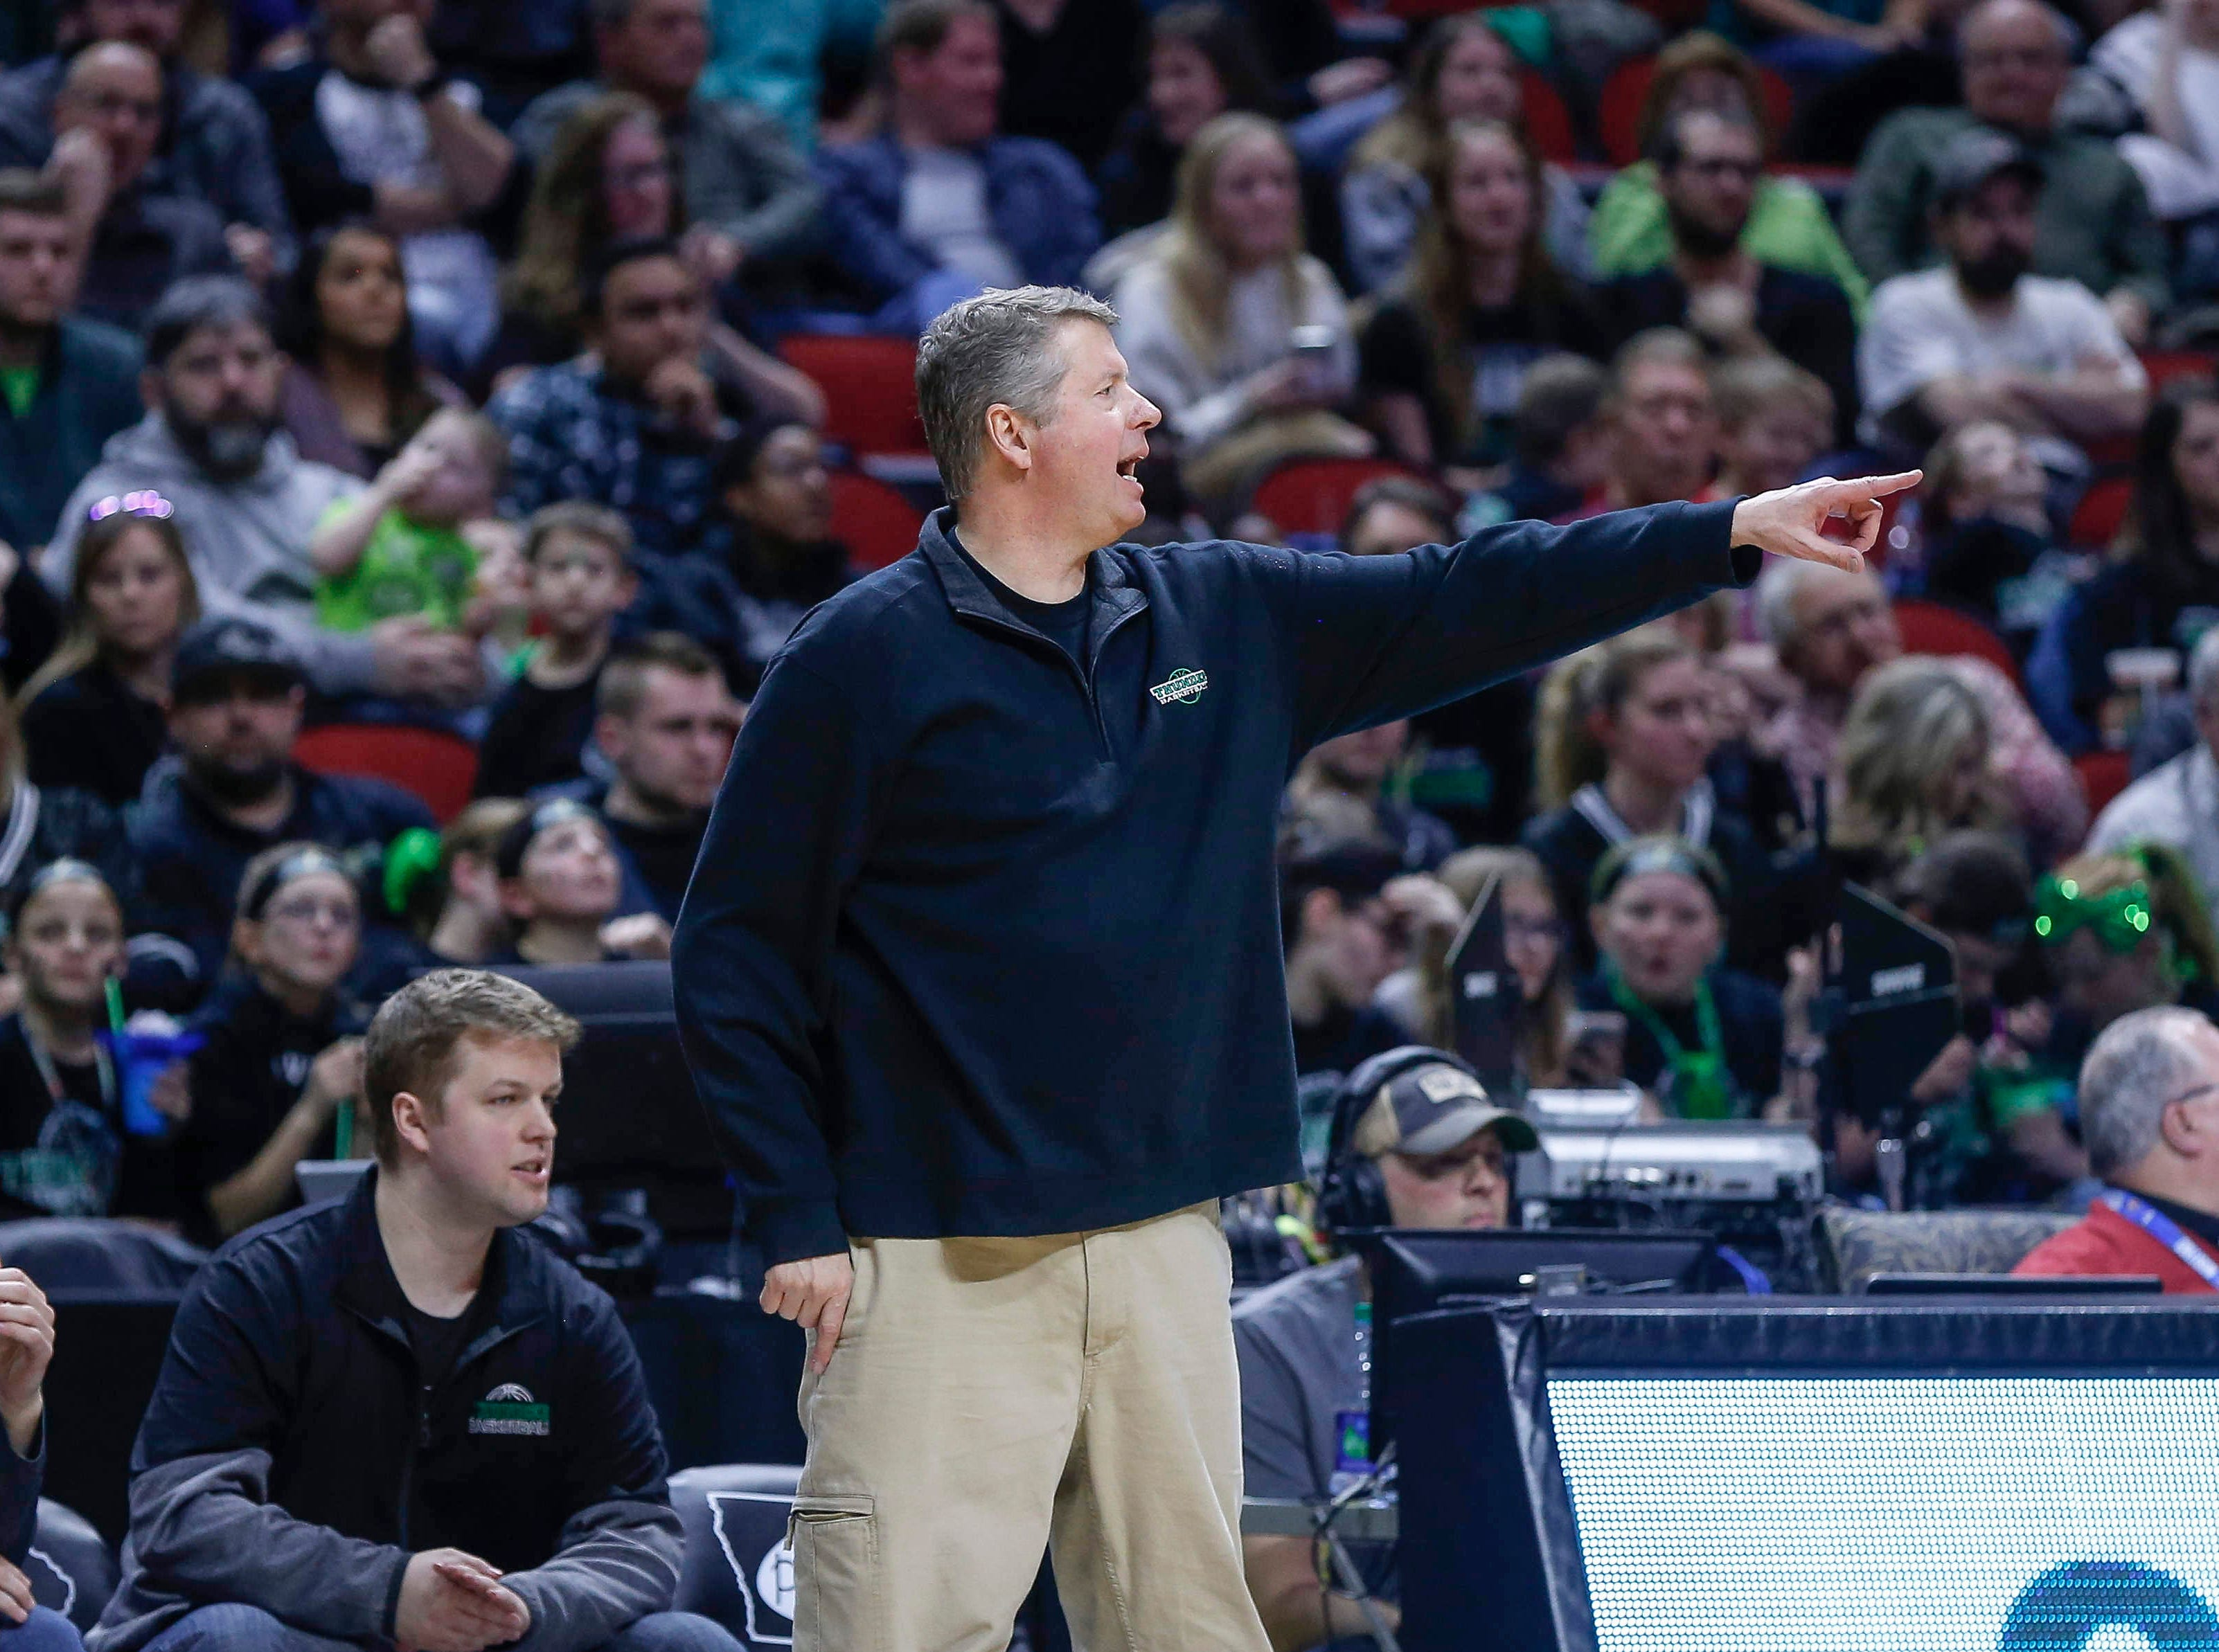 Grand View Christian head boys basketball coach David Stubbs motions to a player during the Class 1A boys state basketball championship game against Alburnett on Friday, March 8, 2019, at Wells Fargo Arena in Des Moines.